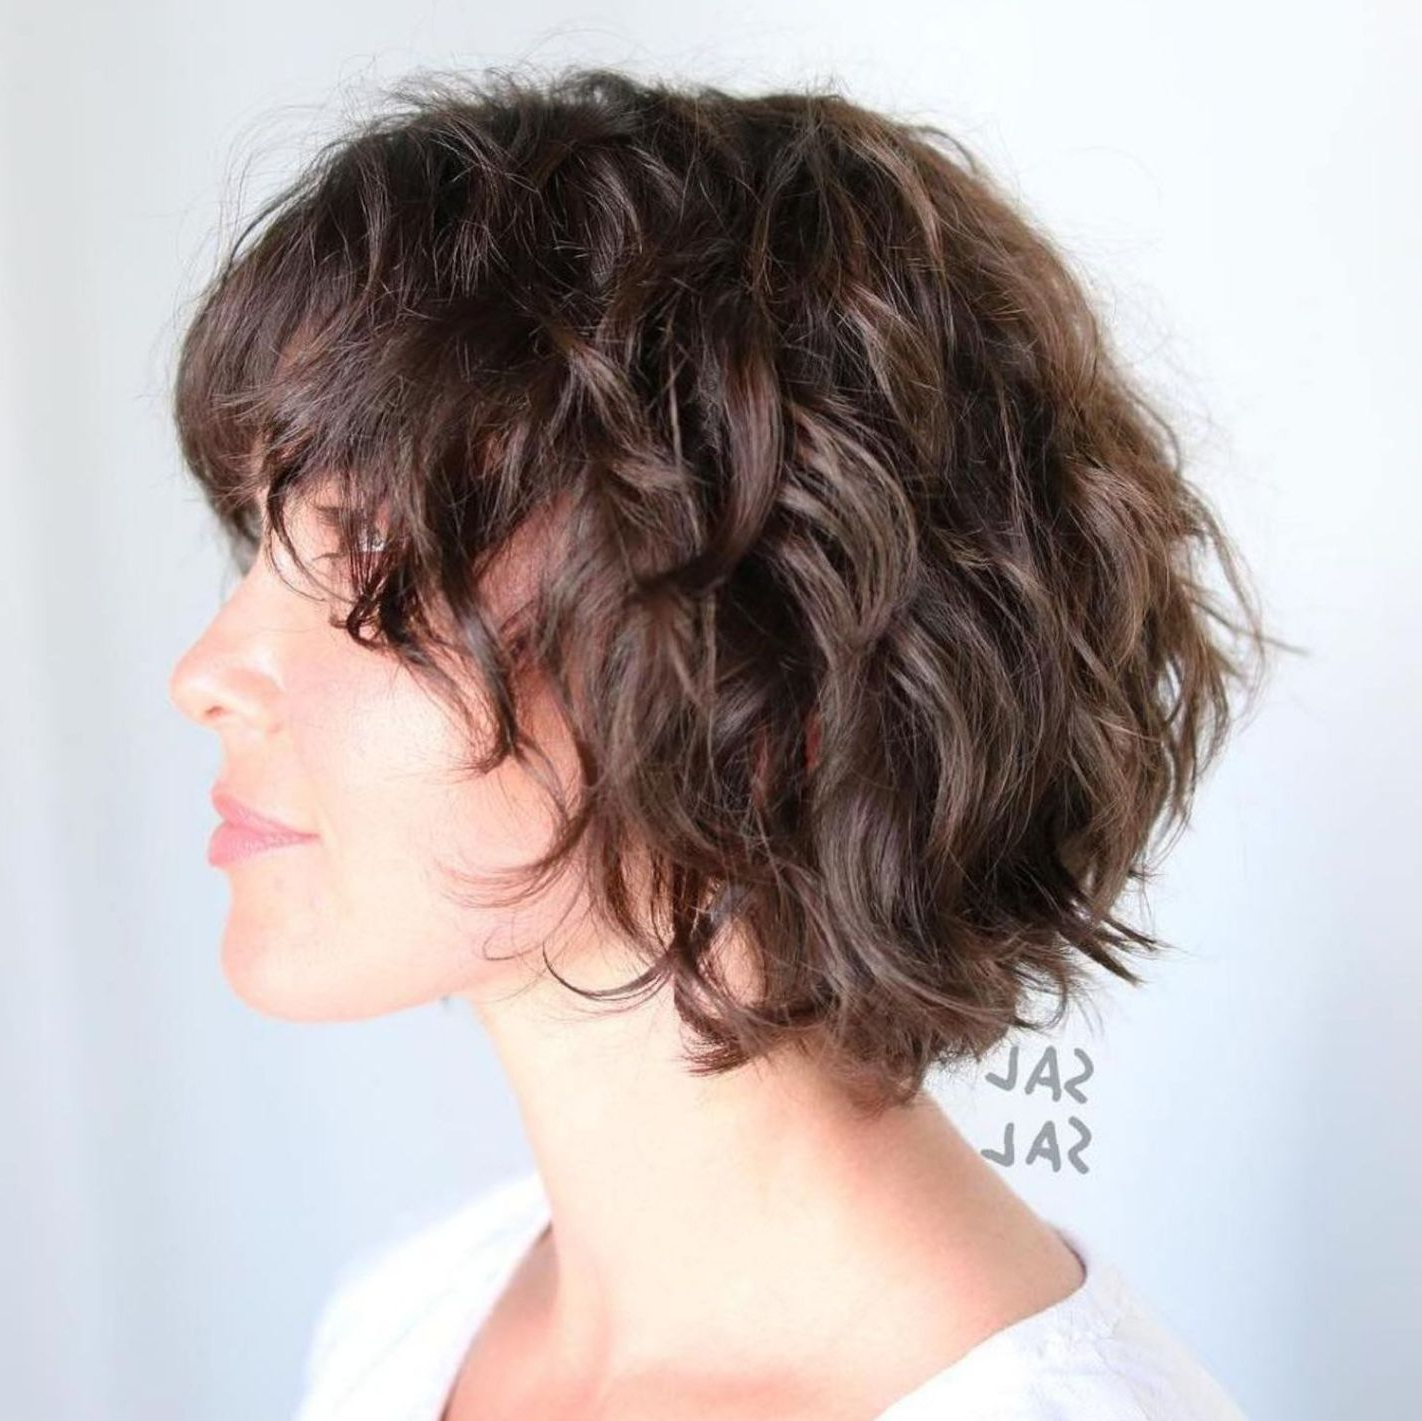 60 Short Shag Hairstyles That You Simply Can't Miss In 2019 Intended For Short Shag Haircuts With Sass (Gallery 2 of 20)